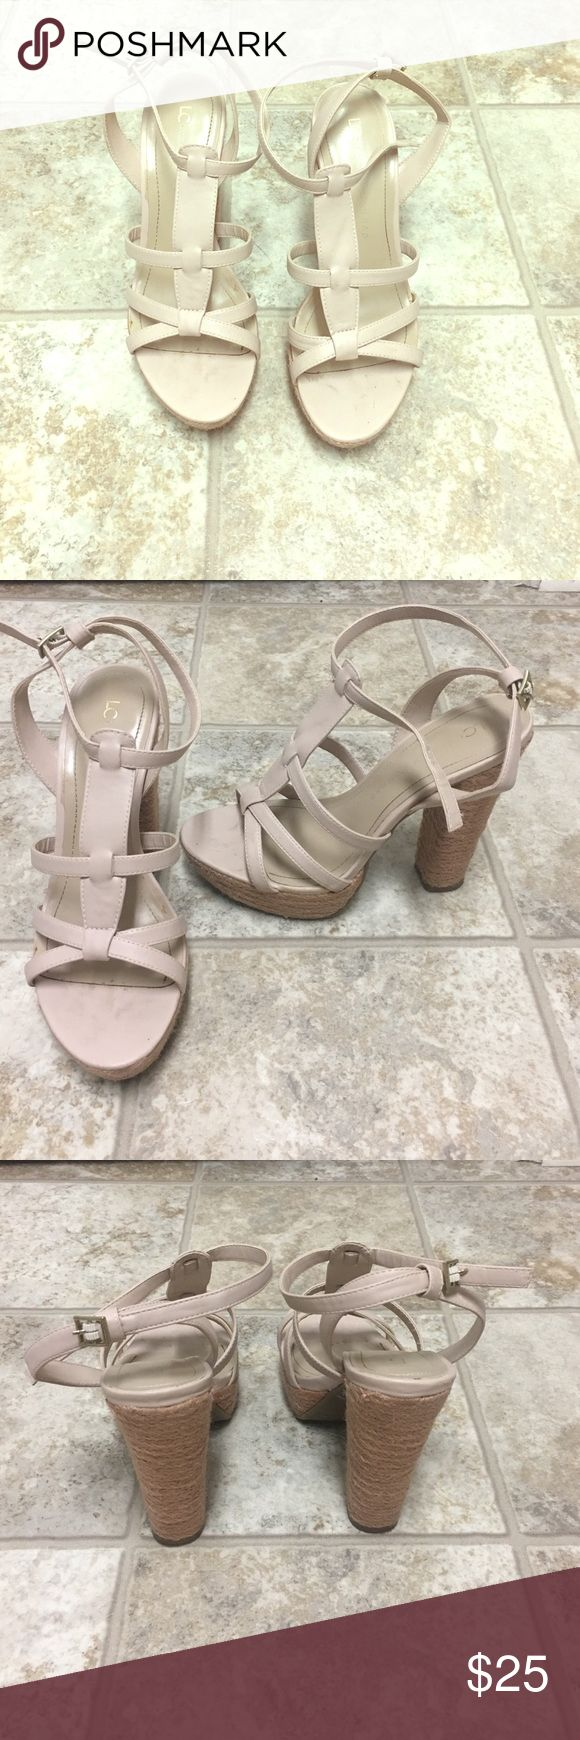 Nude/light pink LC Lauren Conrad heels size 7 Only worn once for a wedding. Size 7. Super comfy! They're a nude/light pink color. LC Lauren Conrad Shoes Heels